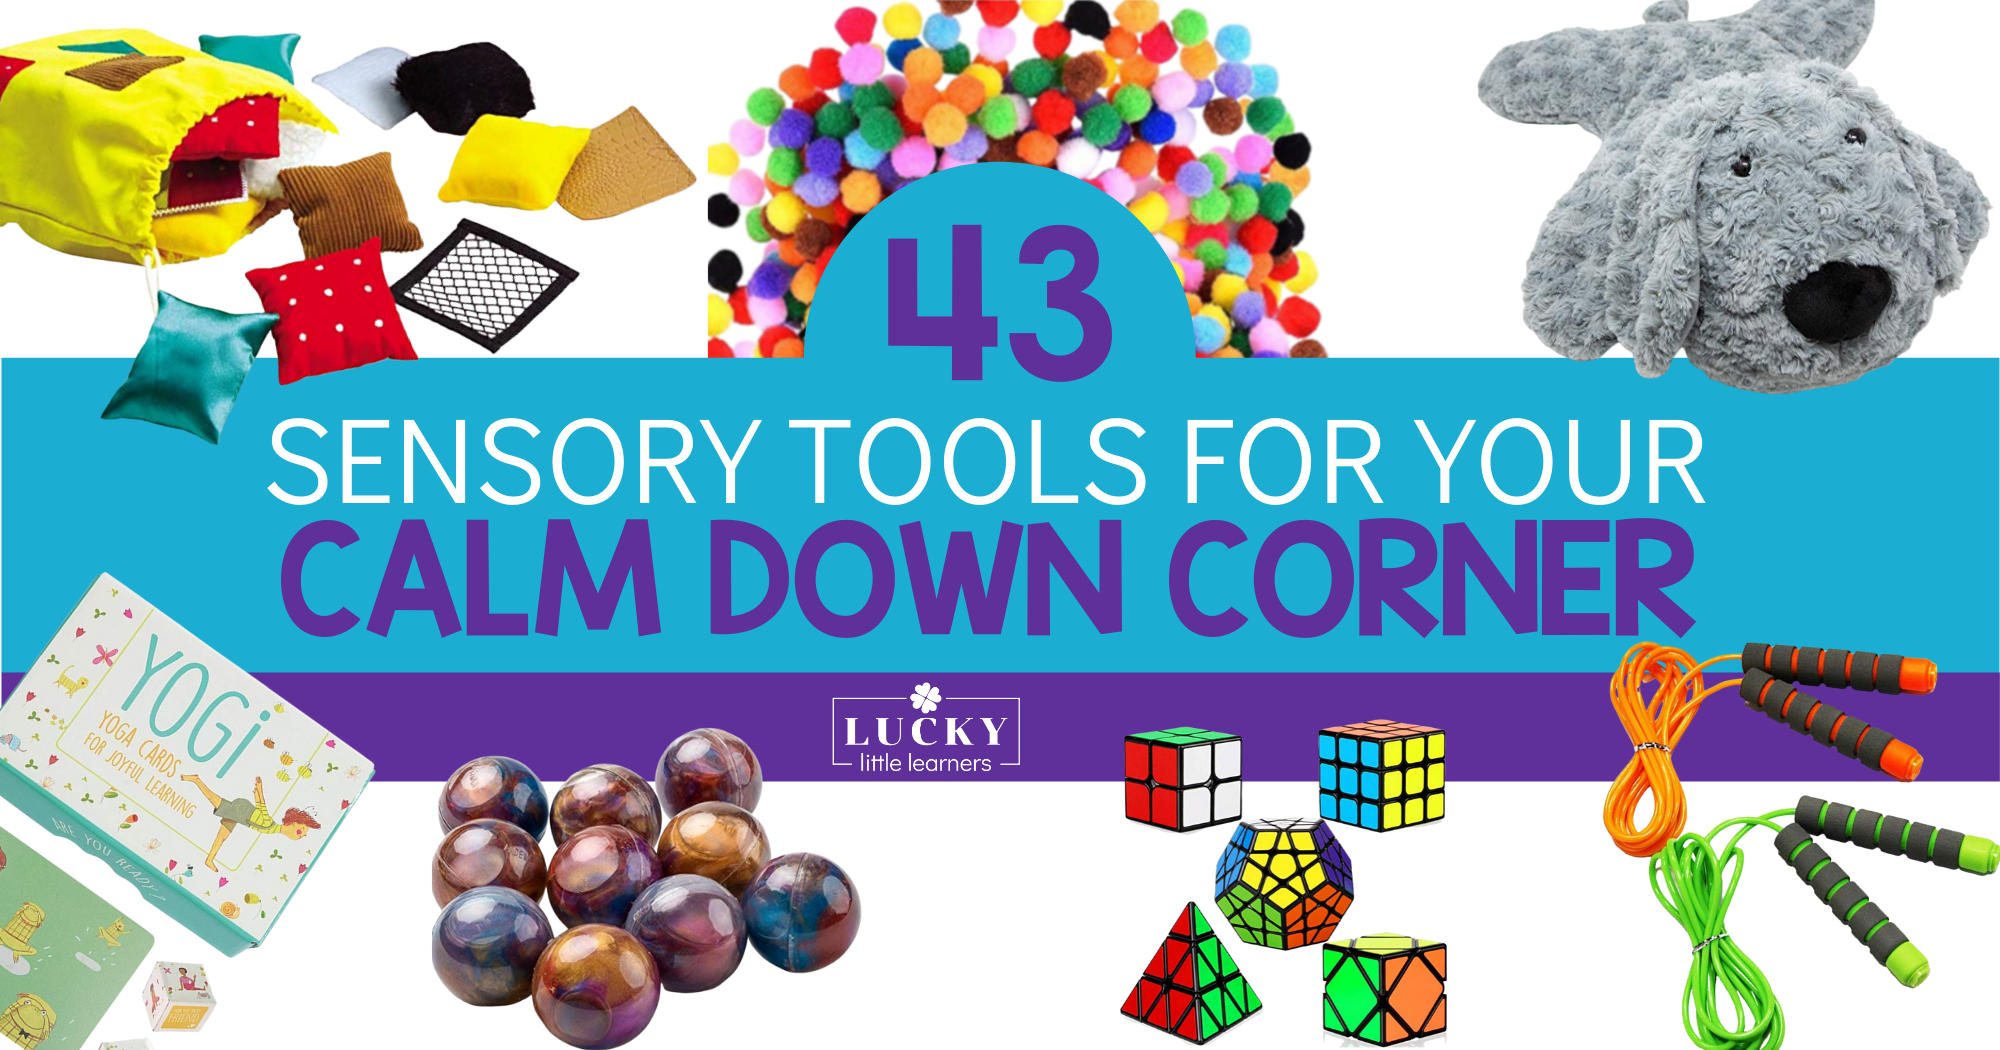 The Best Sensory Tools for Your Calm Down Corner